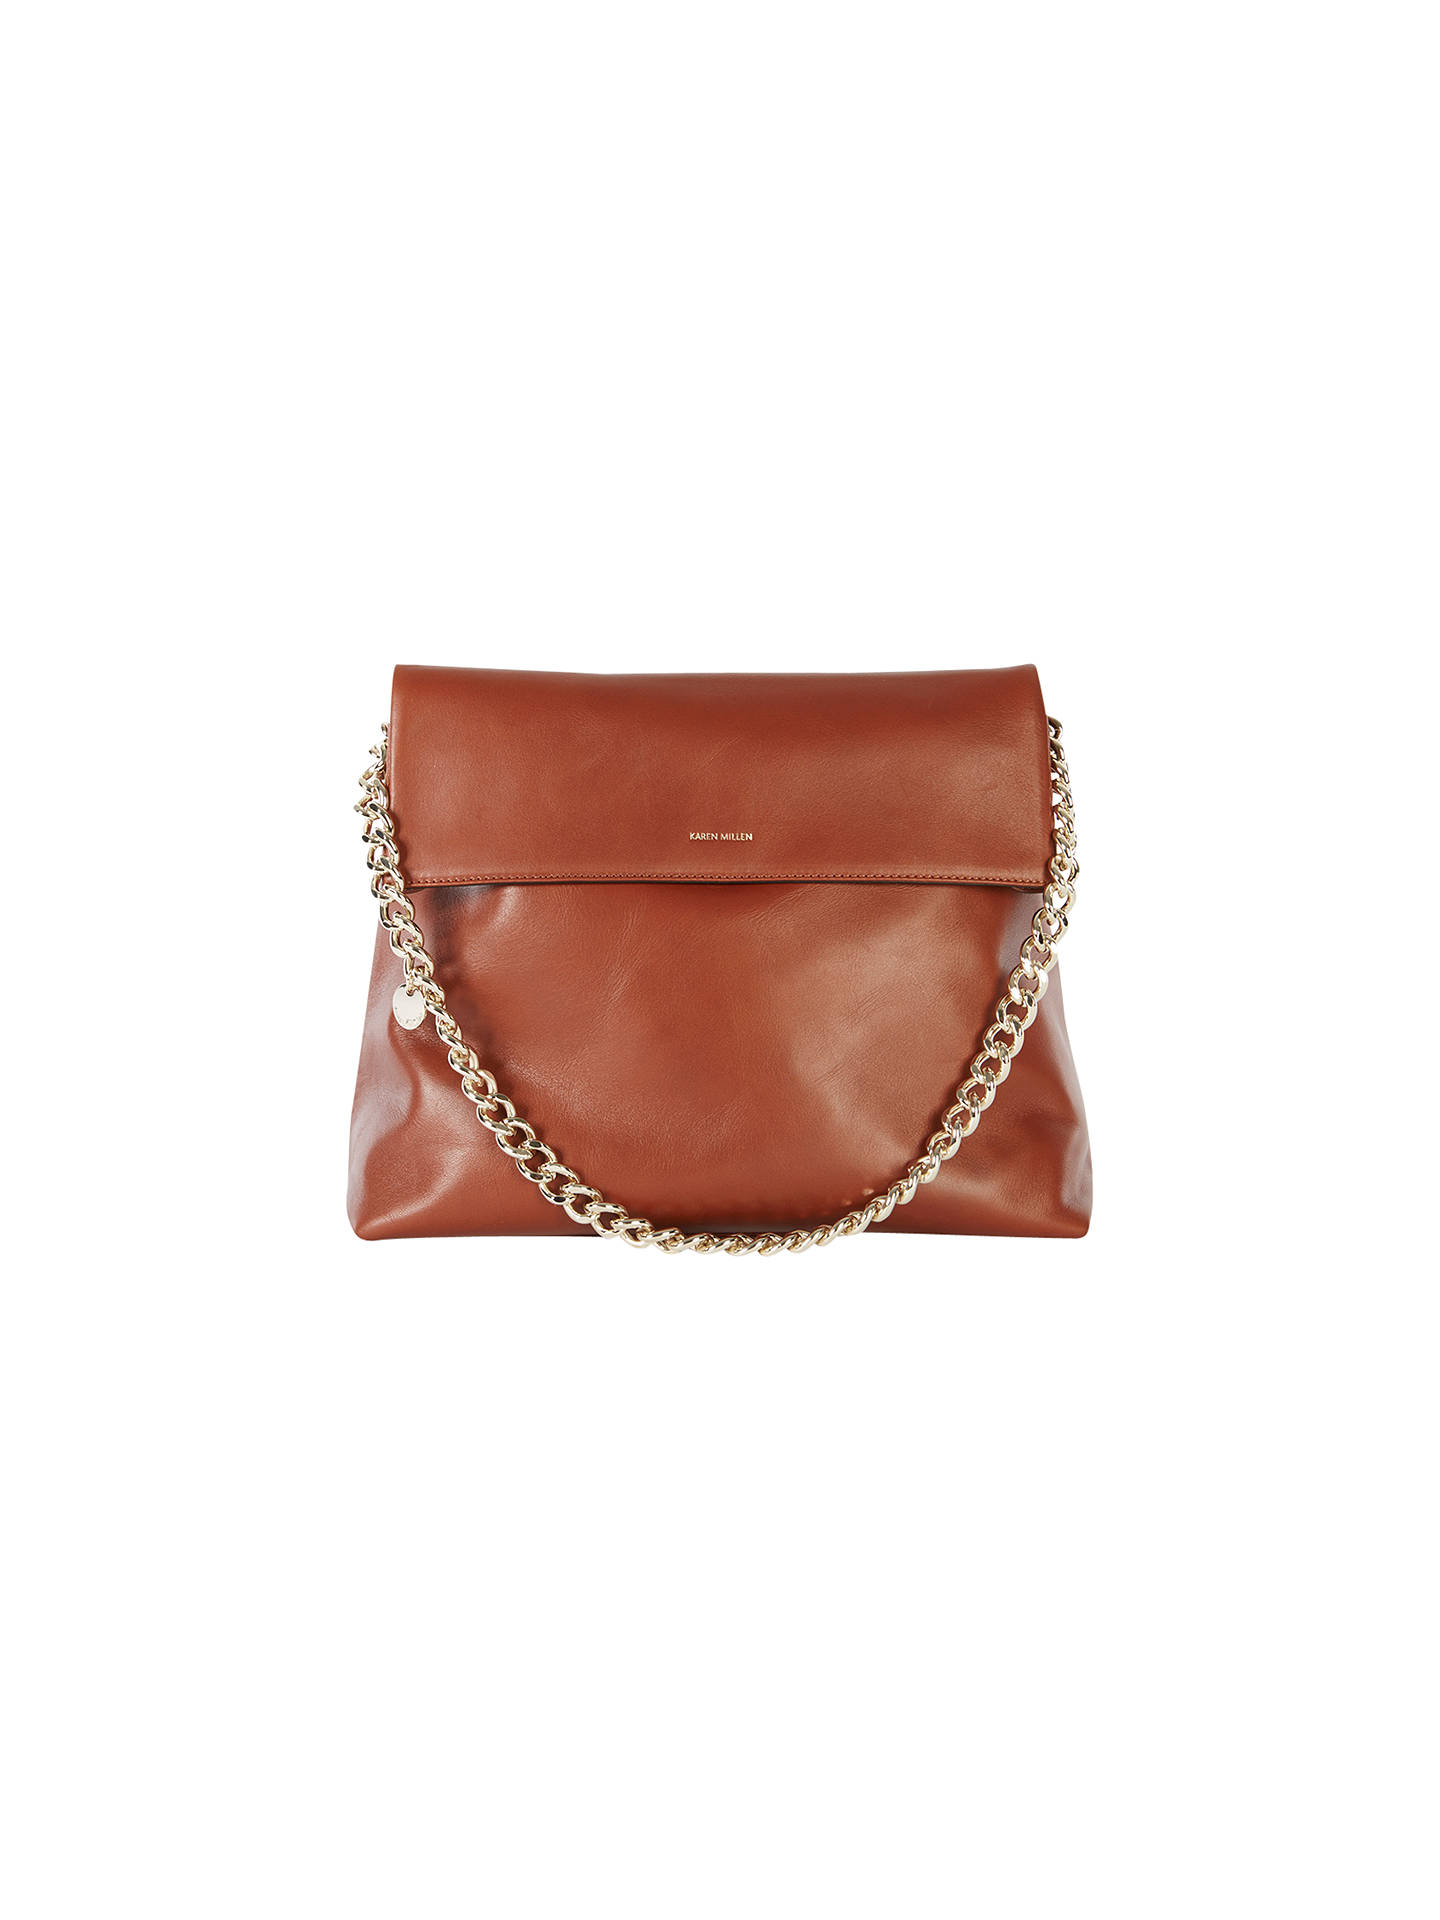 cda5263e9e Buy Karen Millen Leather Oversize Regent Shoulder Bag, Tan Online at  johnlewis.com ...